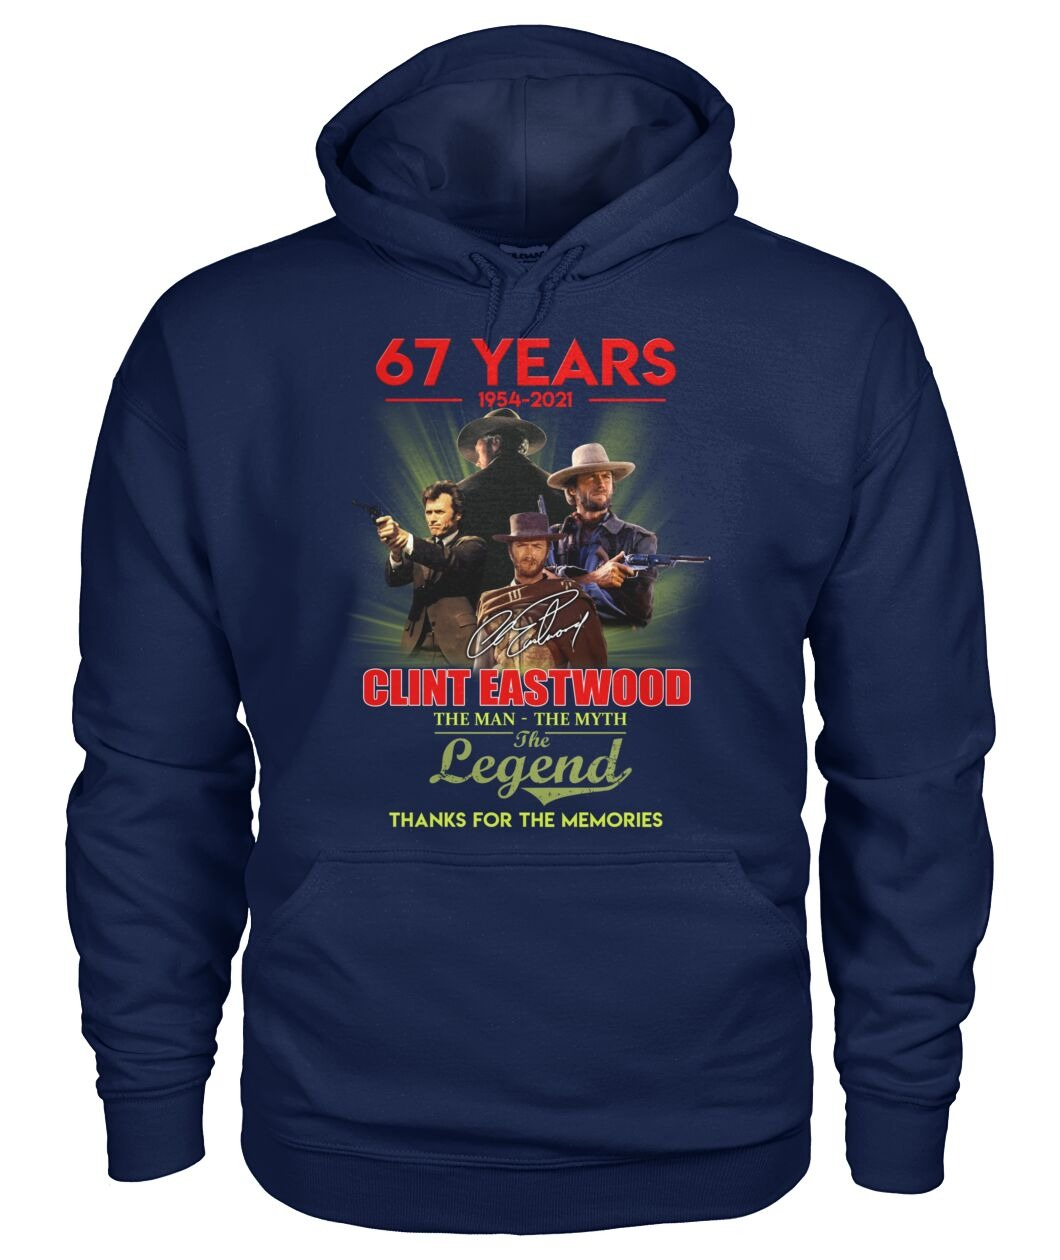 Clint Eastwood 67 years the man the myth the legend thanks for memories hoodie